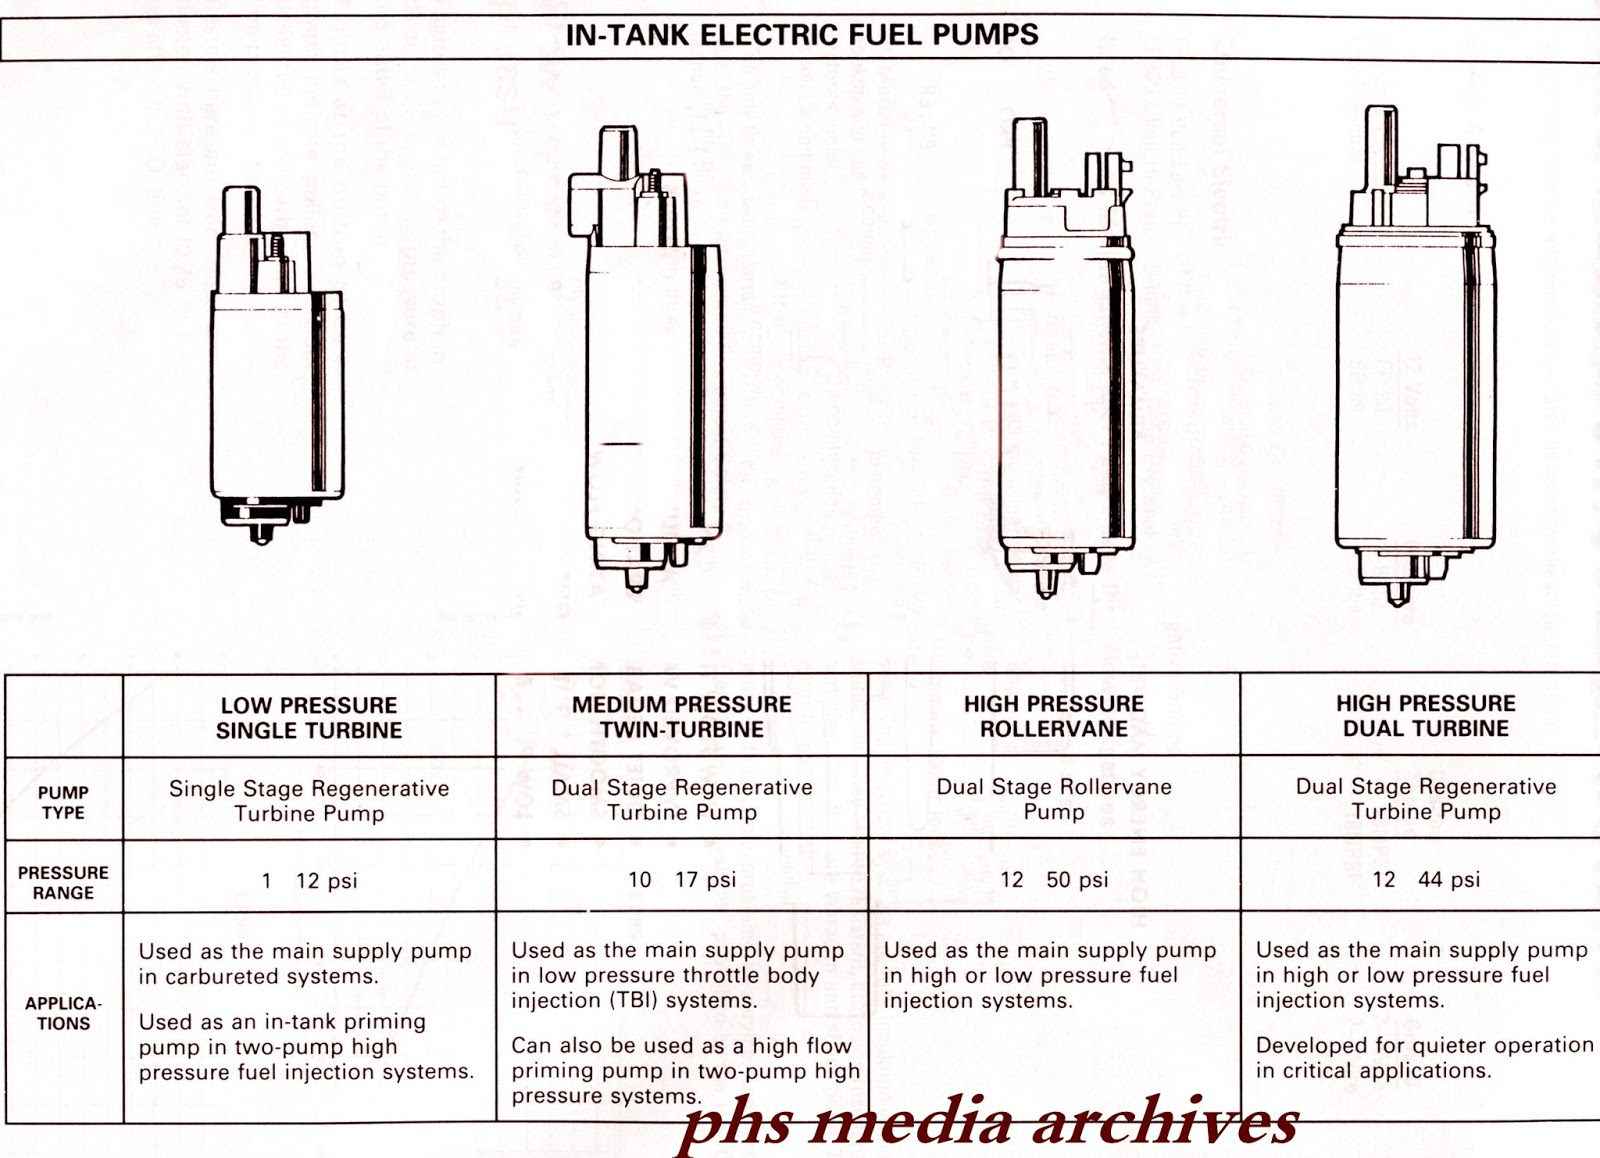 phs tech series 1980s chevrolet electric fuel pump guideelectric fuel pump designs shown above